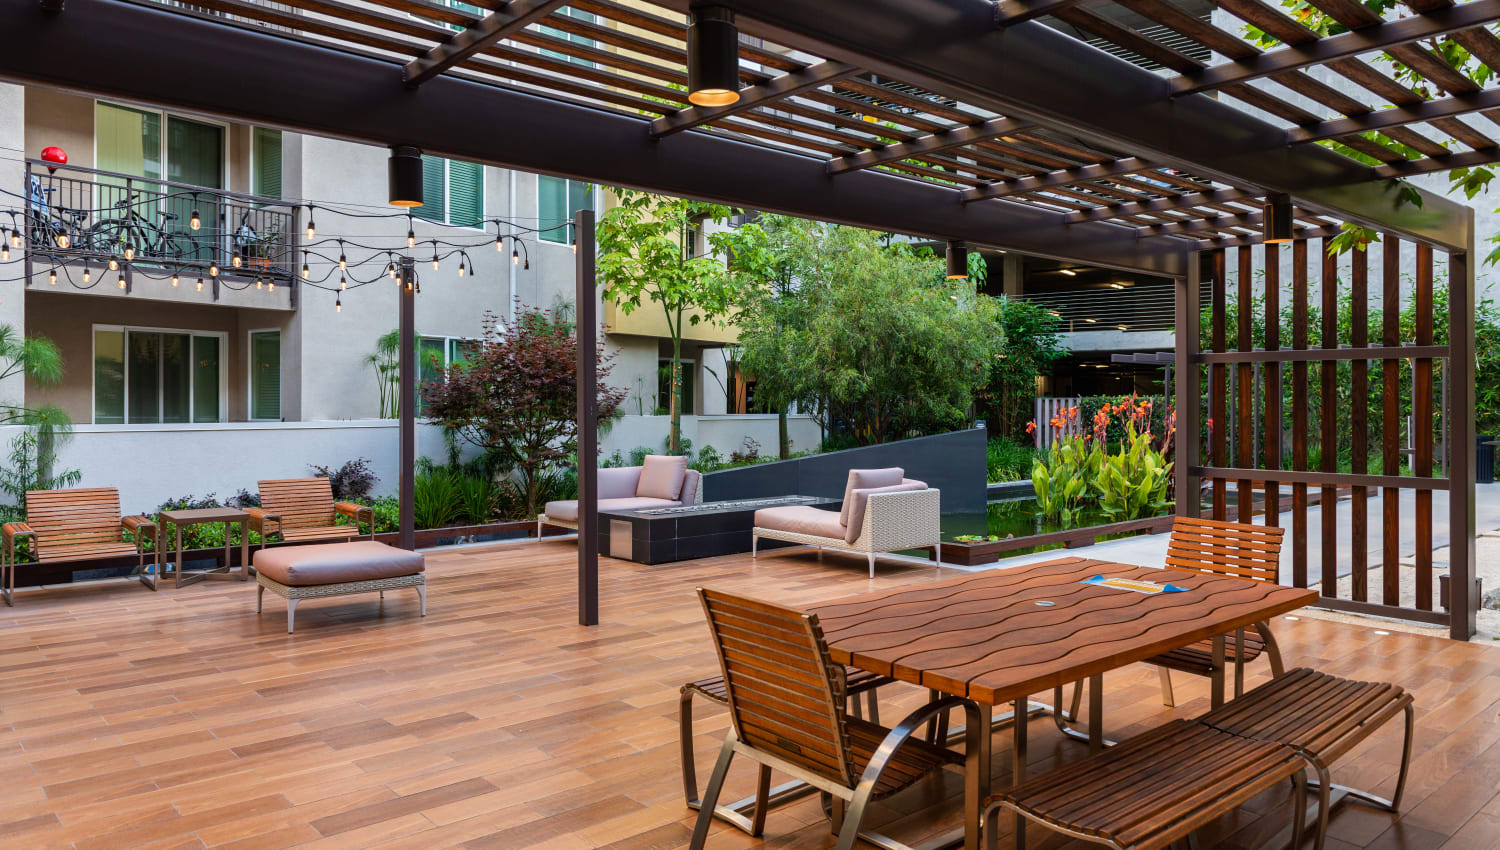 Pergola over a picnic table at one of the common area courtyards at Fusion Apartments in Irvine, California